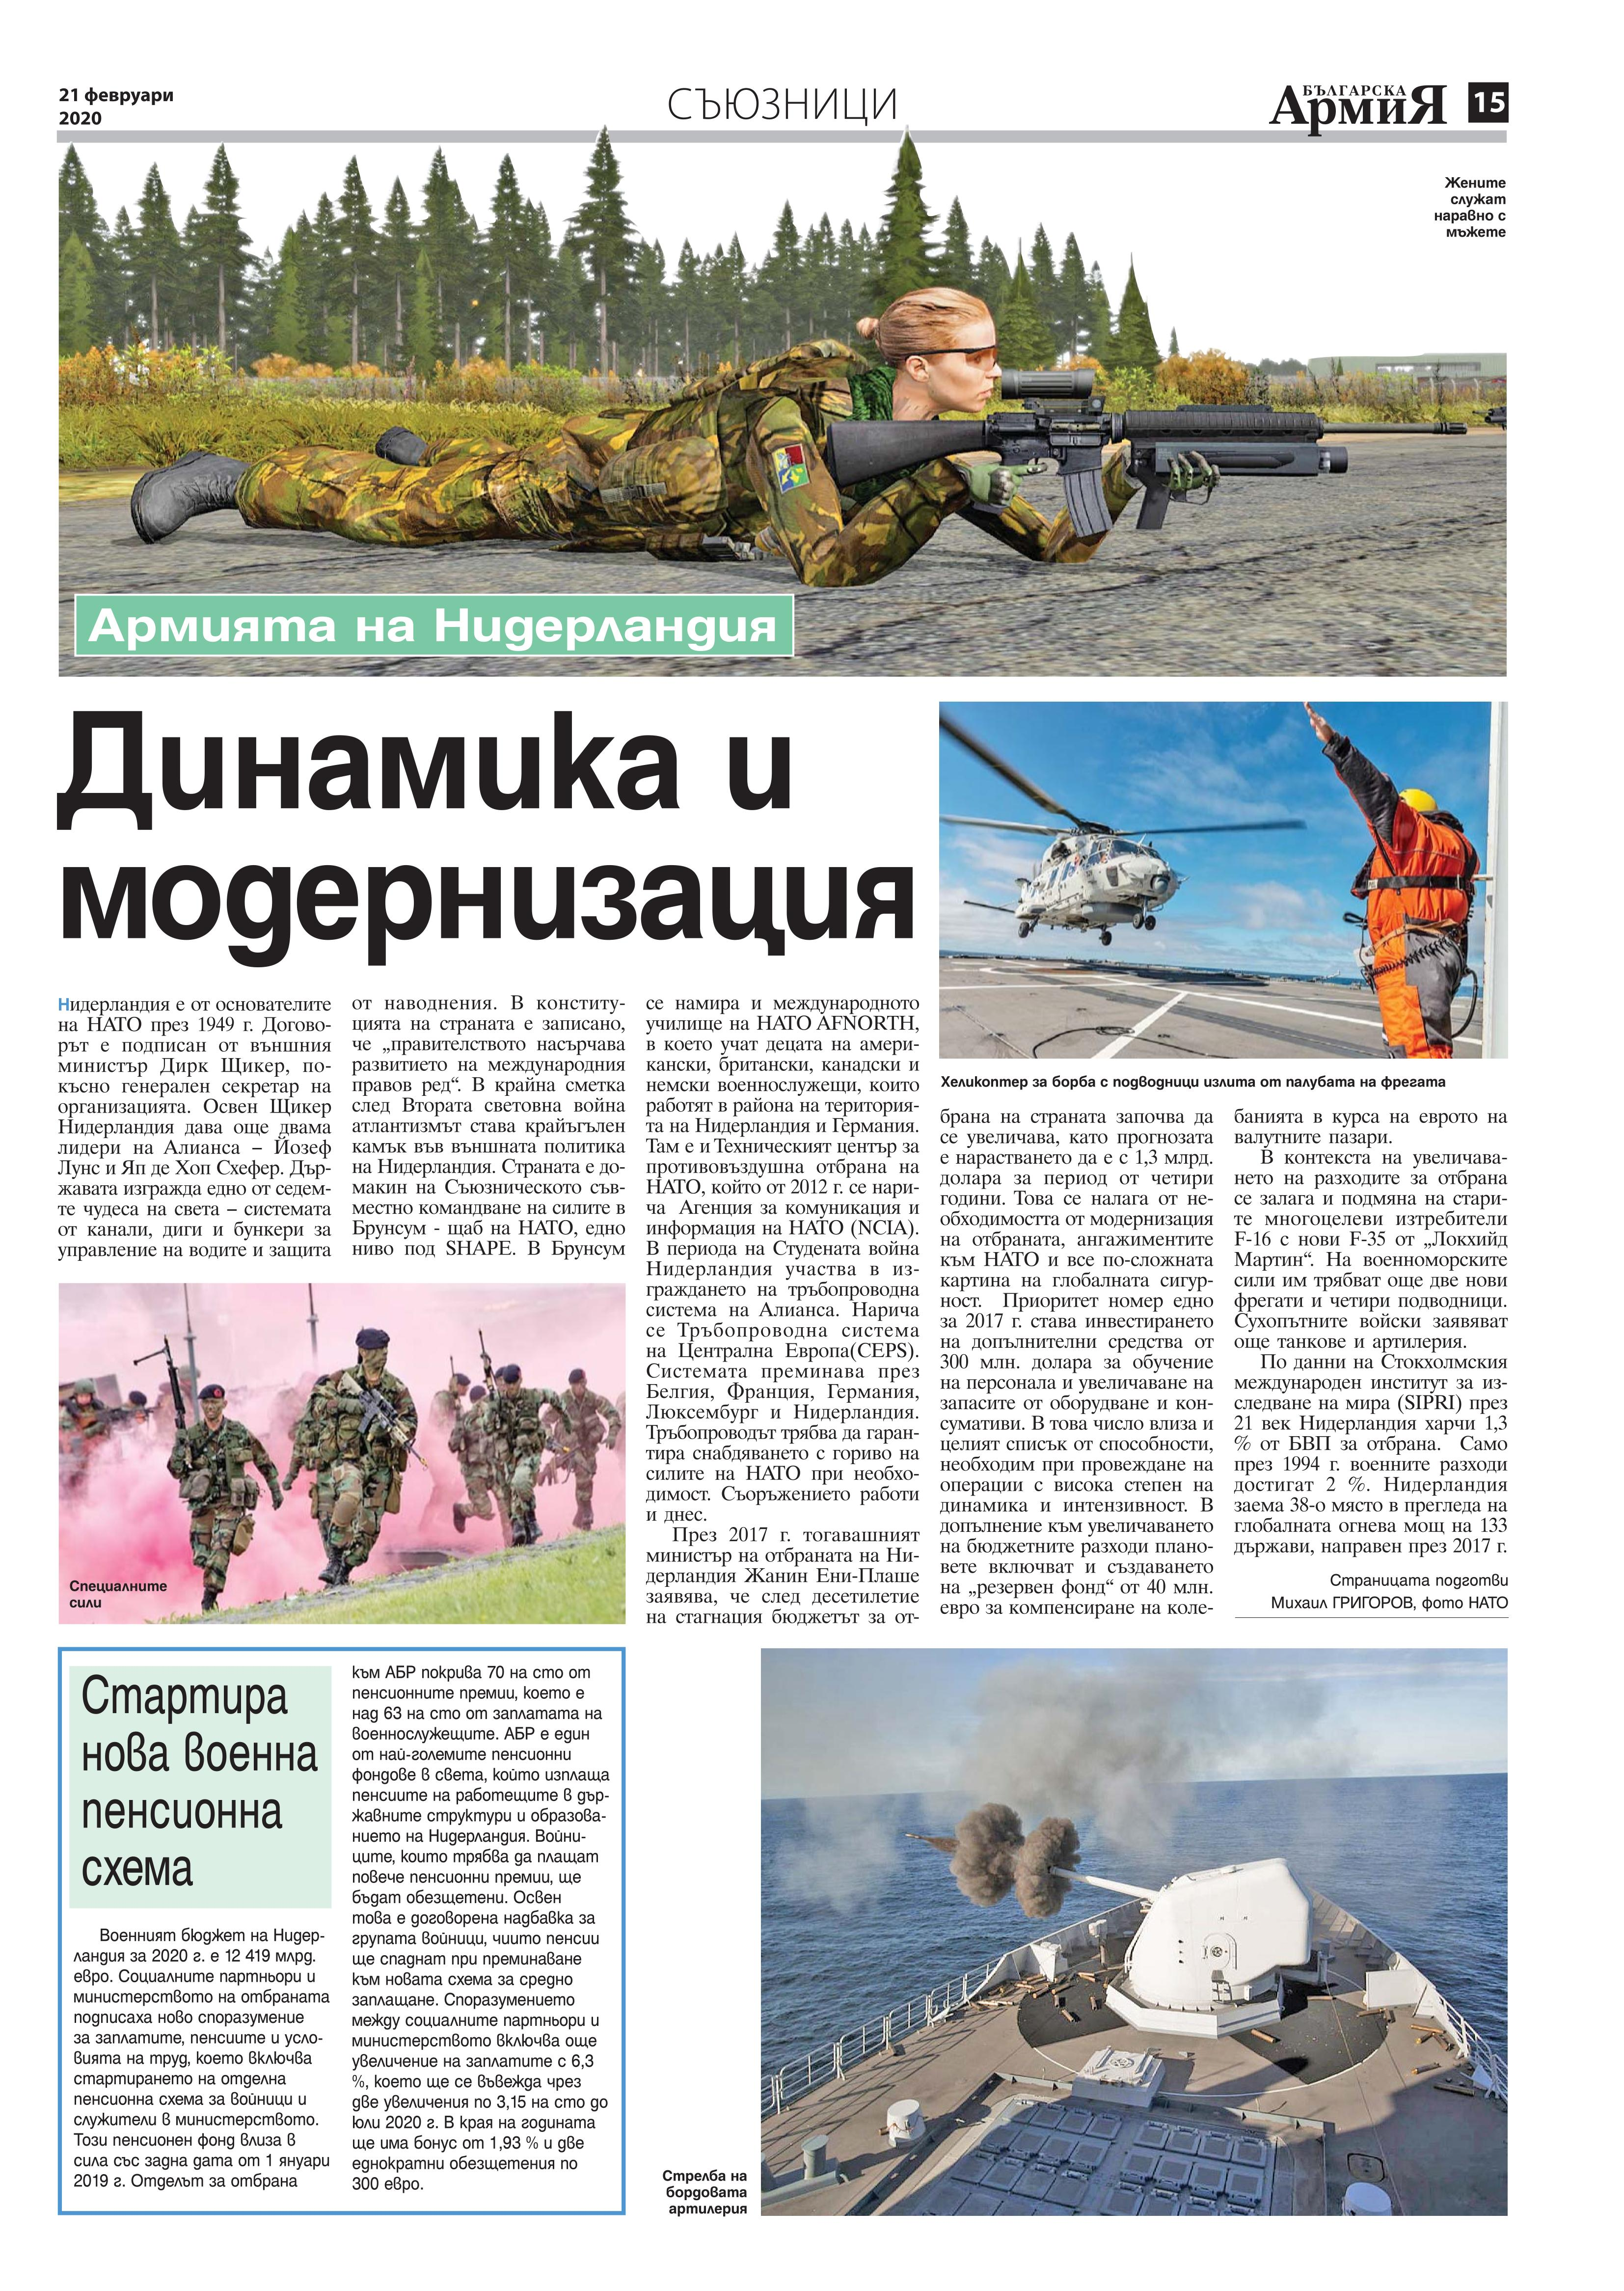 https://armymedia.bg/wp-content/uploads/2015/06/15.page1_-127.jpg